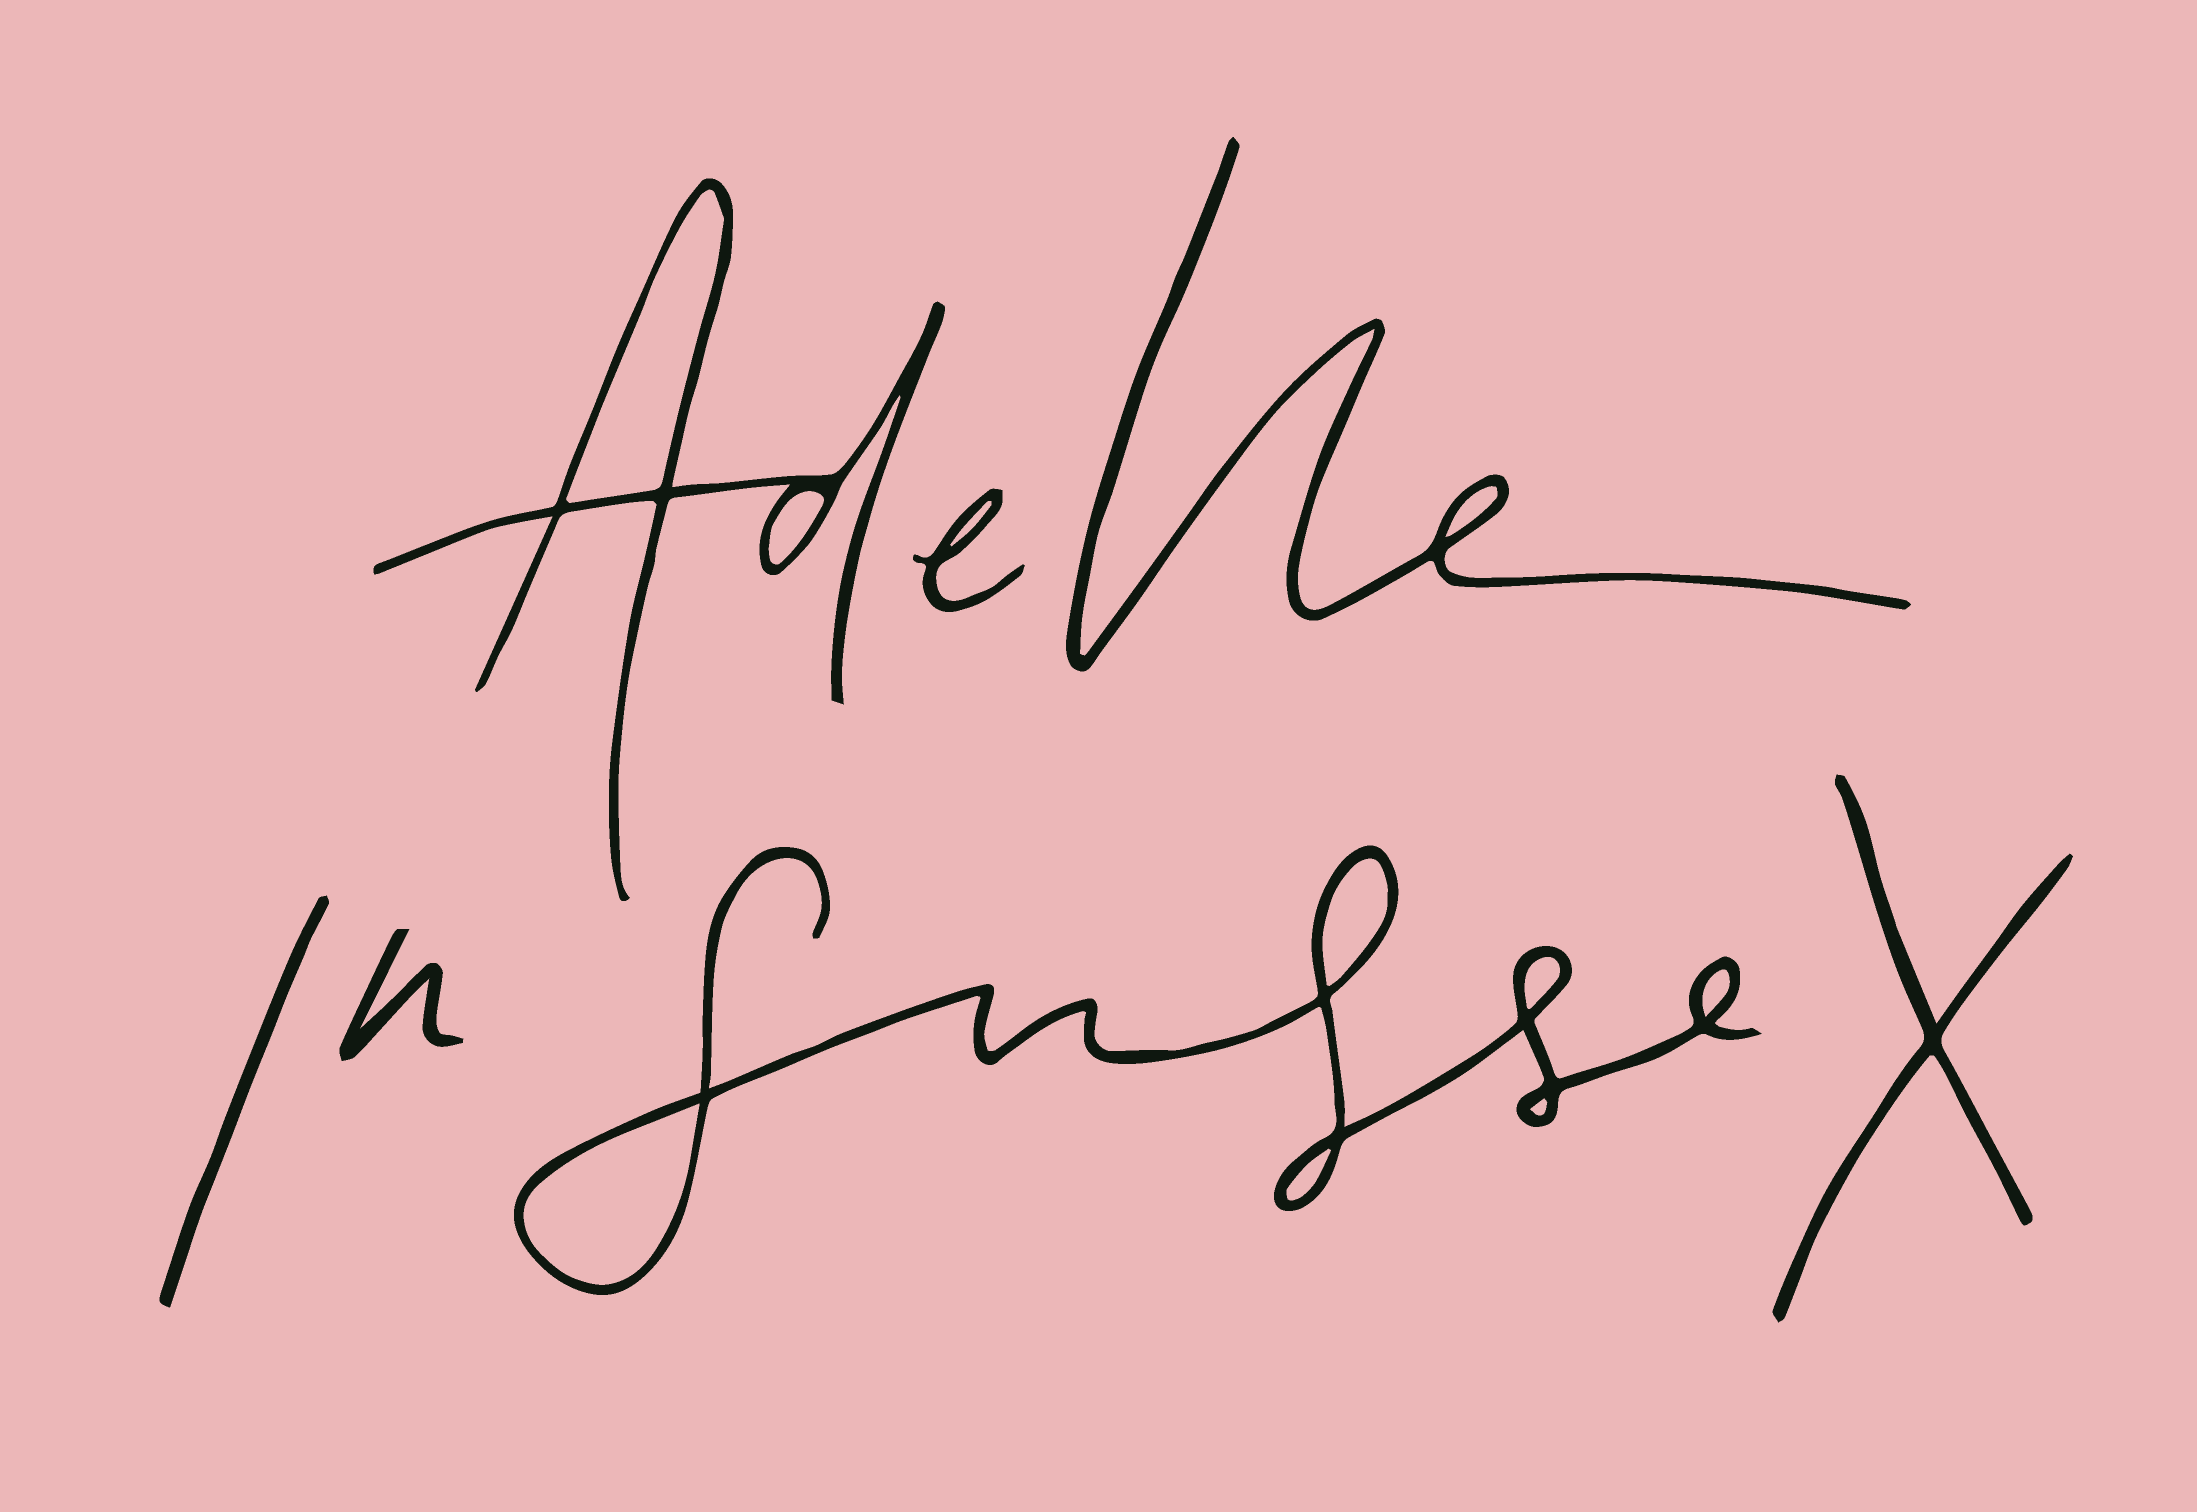 Adelle in sussex